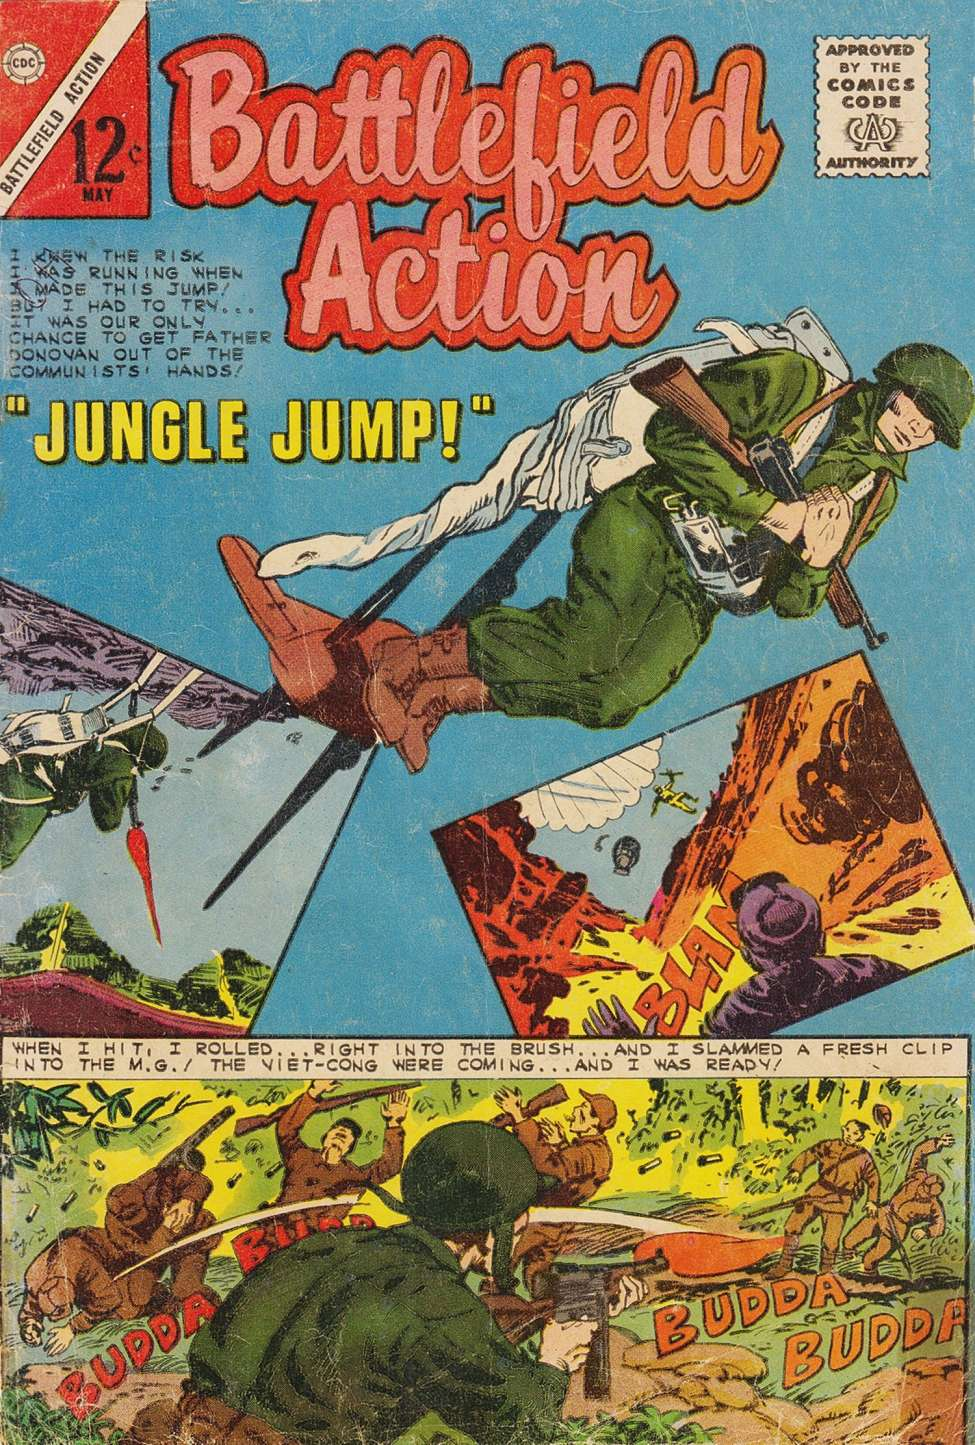 Comic Book Cover For Battlefield Action #47